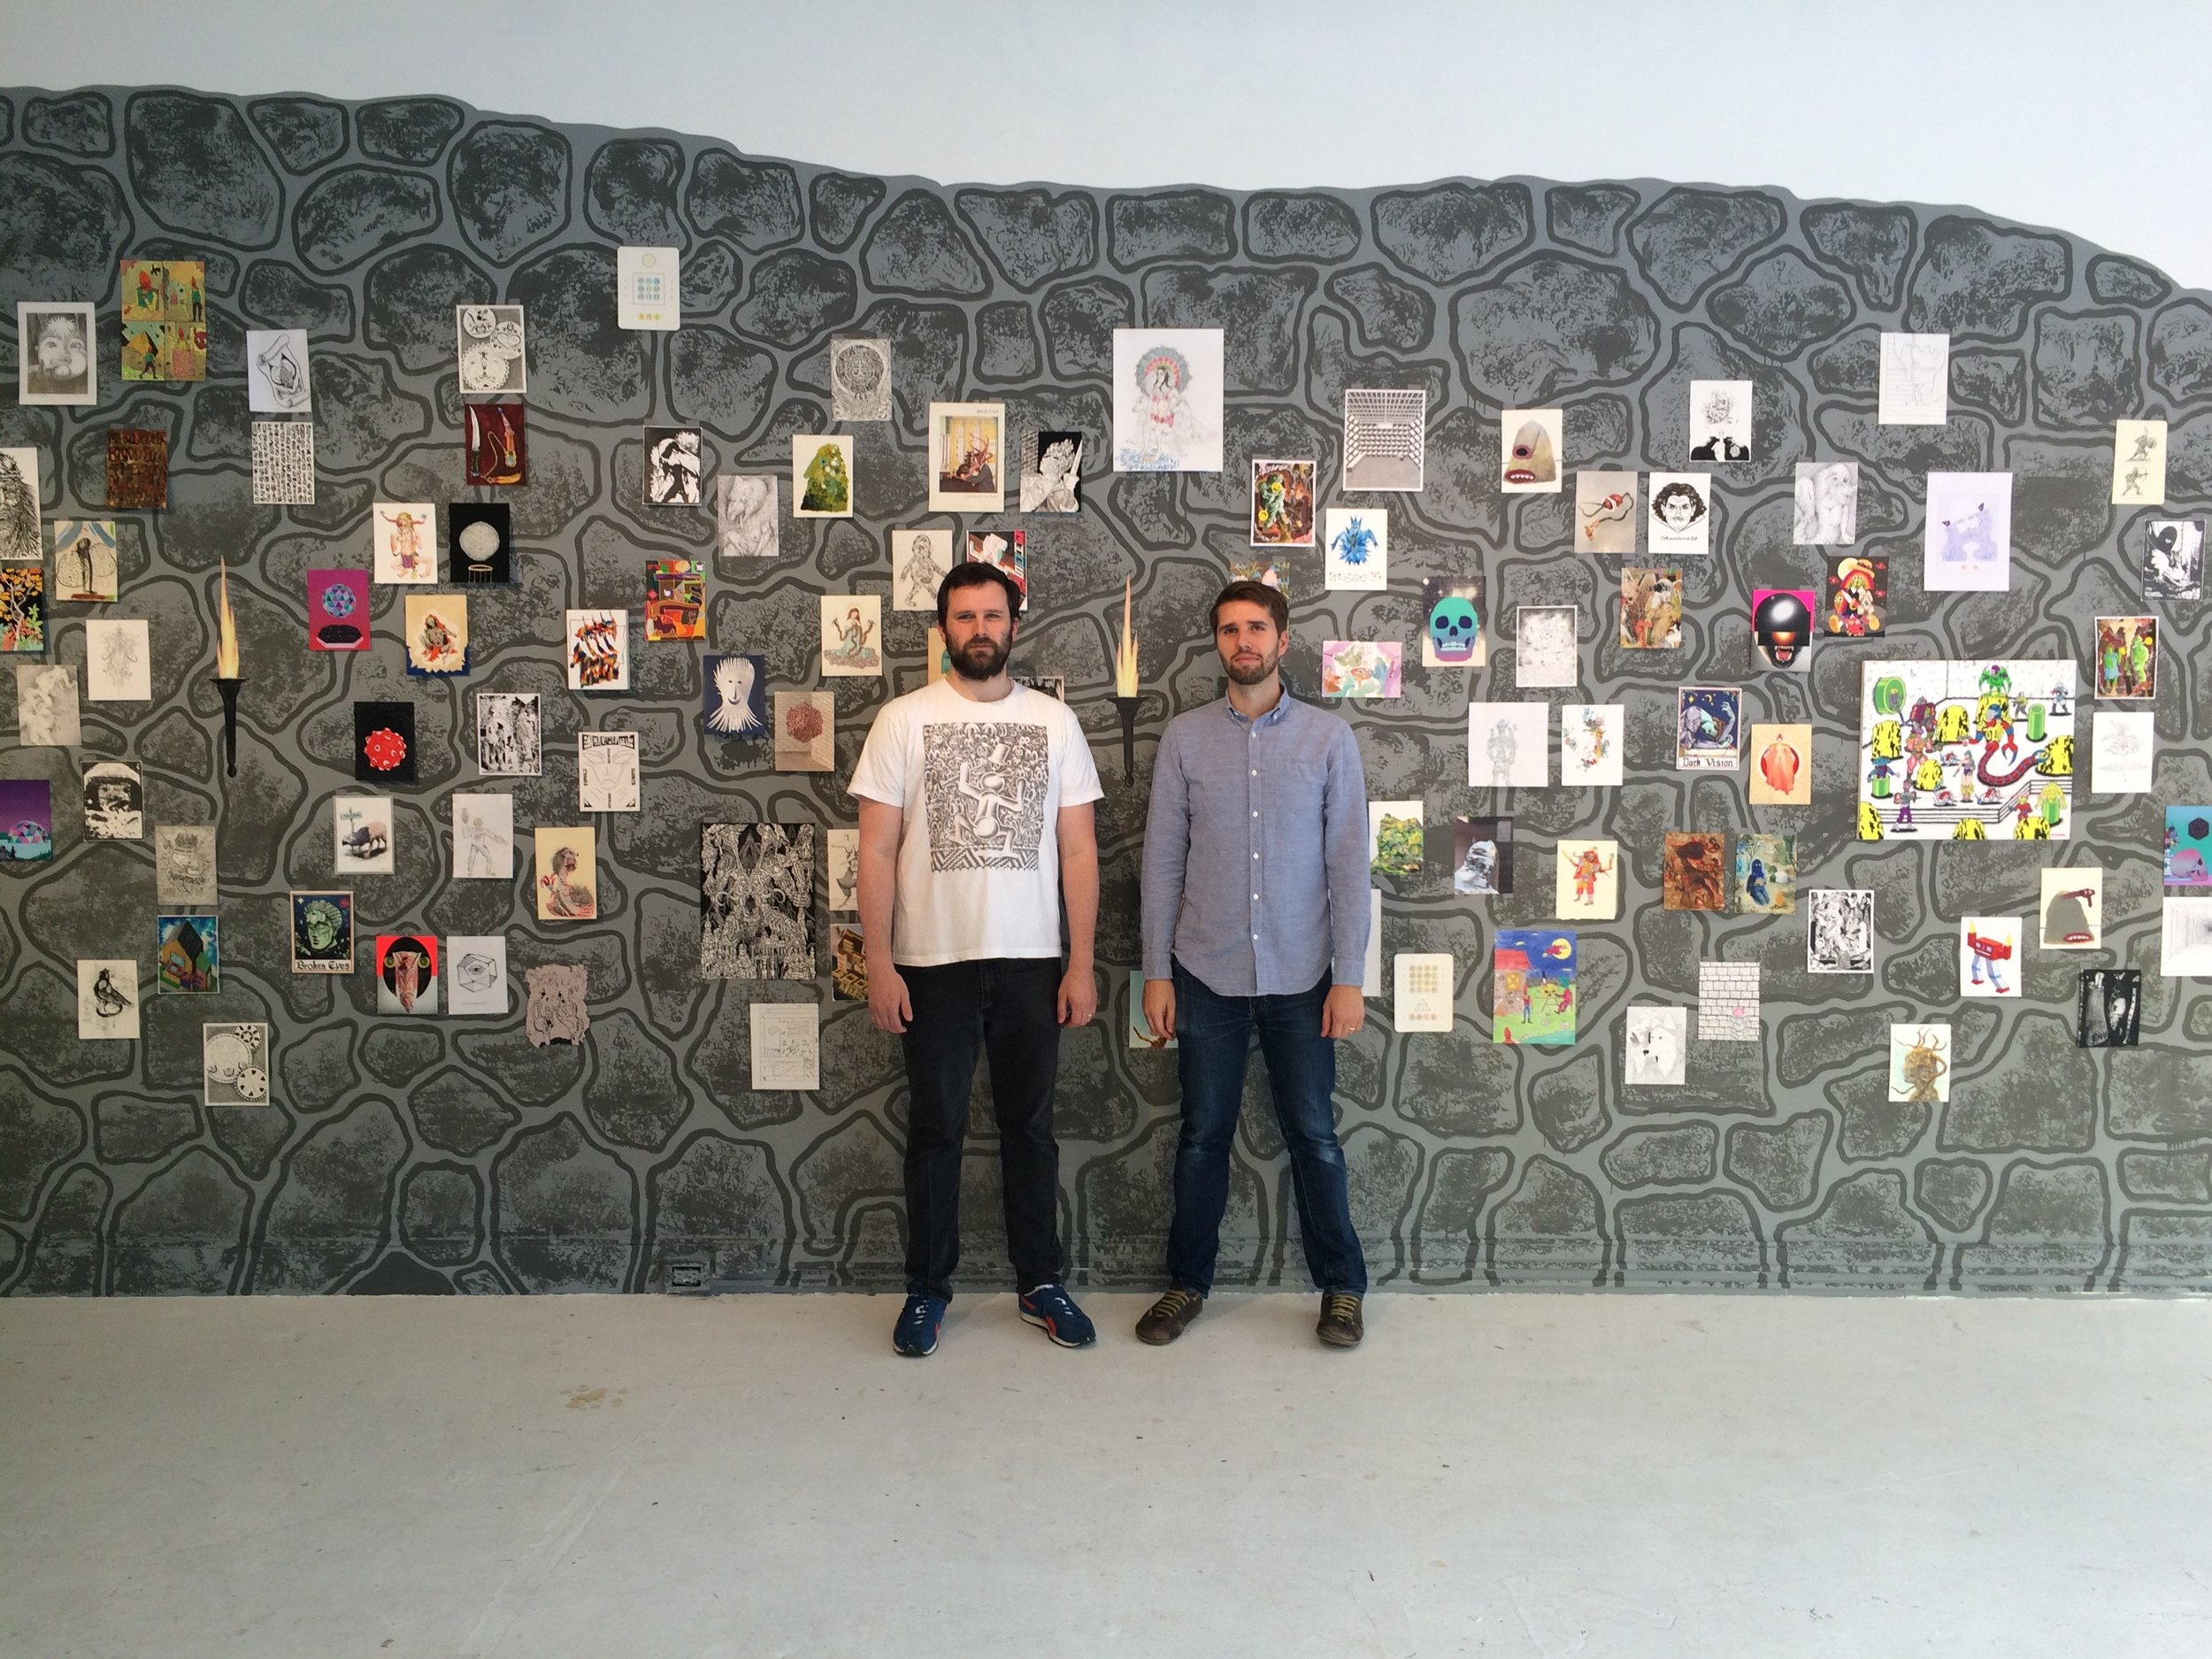 curators Casey Jex Smith and Ryan Browning